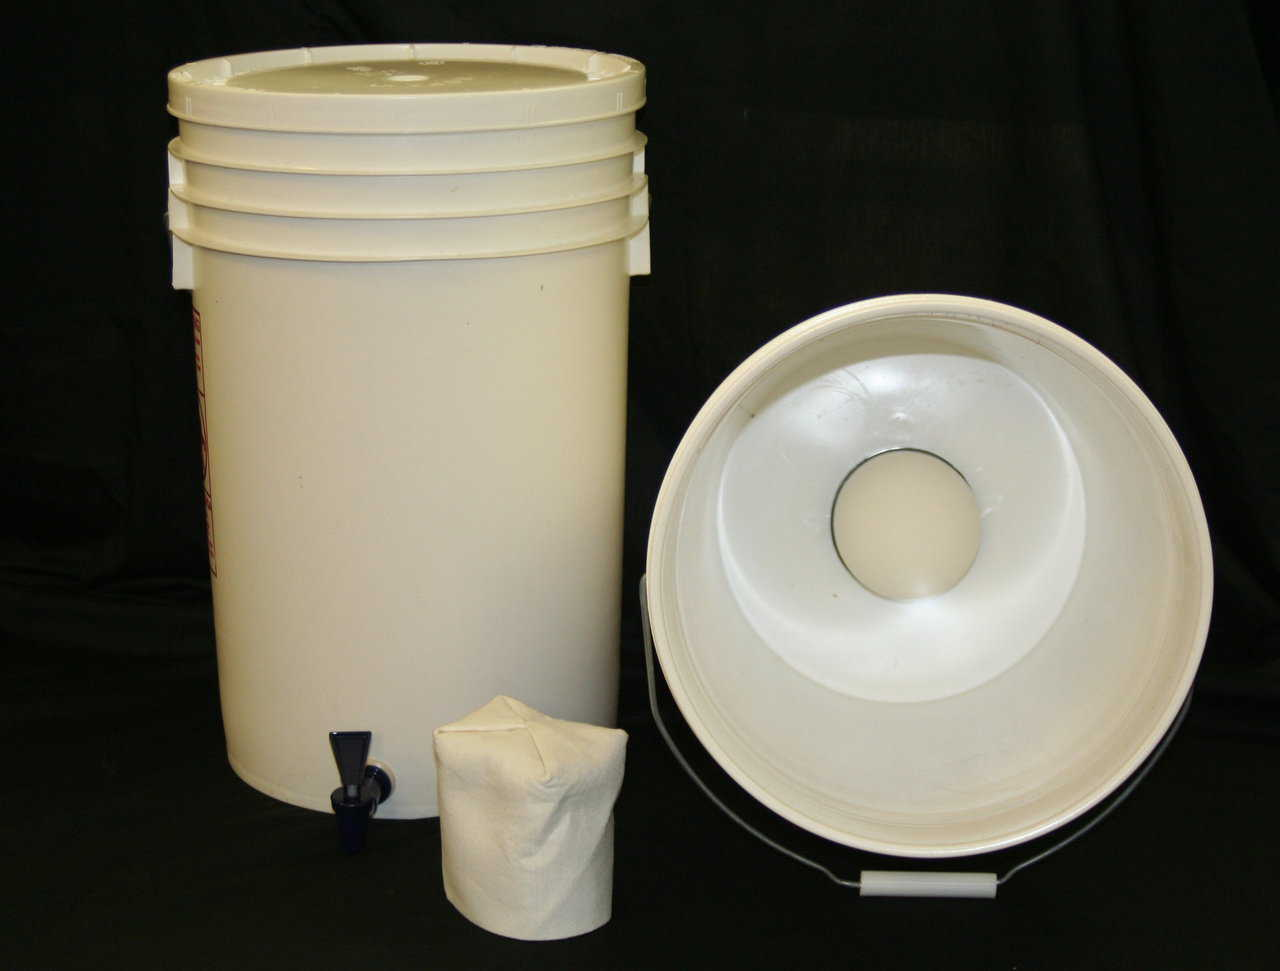 The Just Water Ceramic Drip-Filter — Assembling the Just Water Ceramic Drip-Filter only requires 2 plastic, same-size containers with lids and a tool that will cut a hole in plastic.